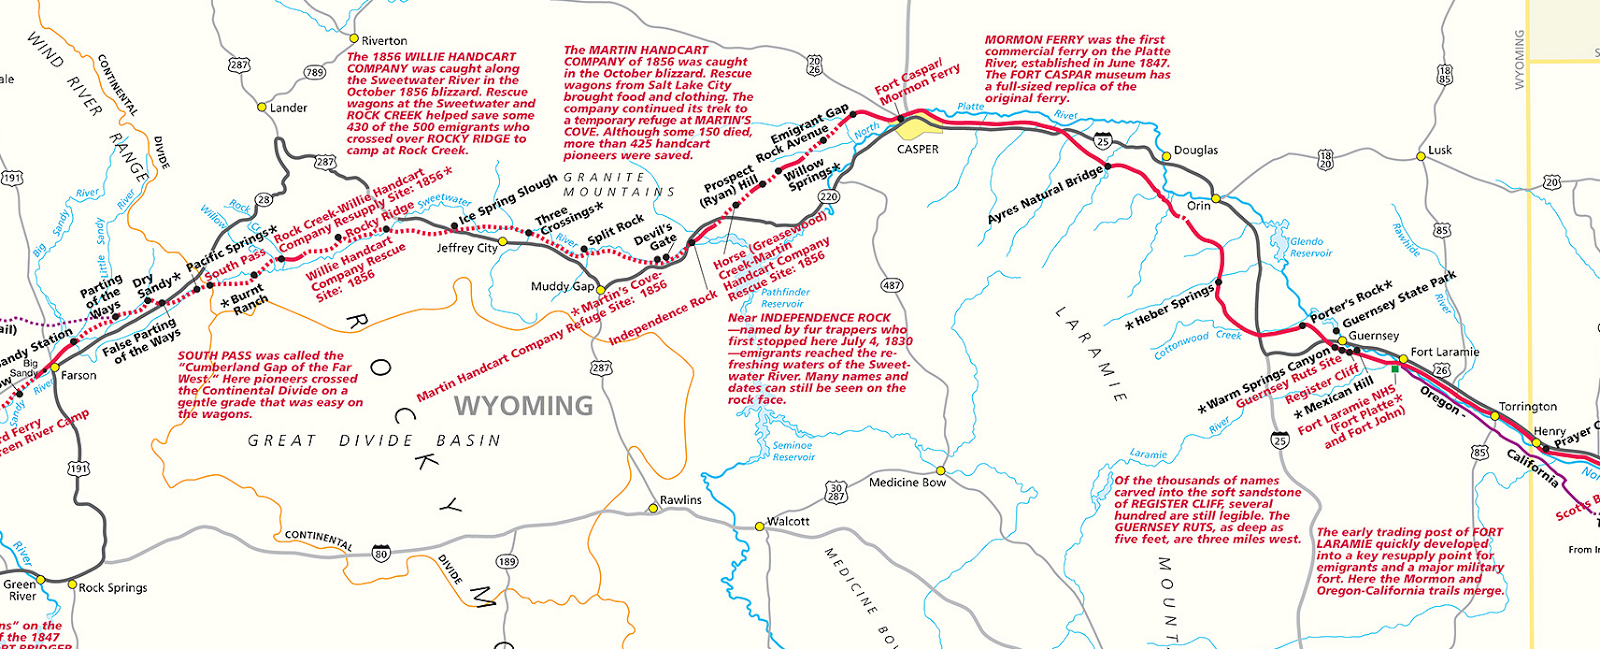 wyoming portion of the mormon trail from the national park service map